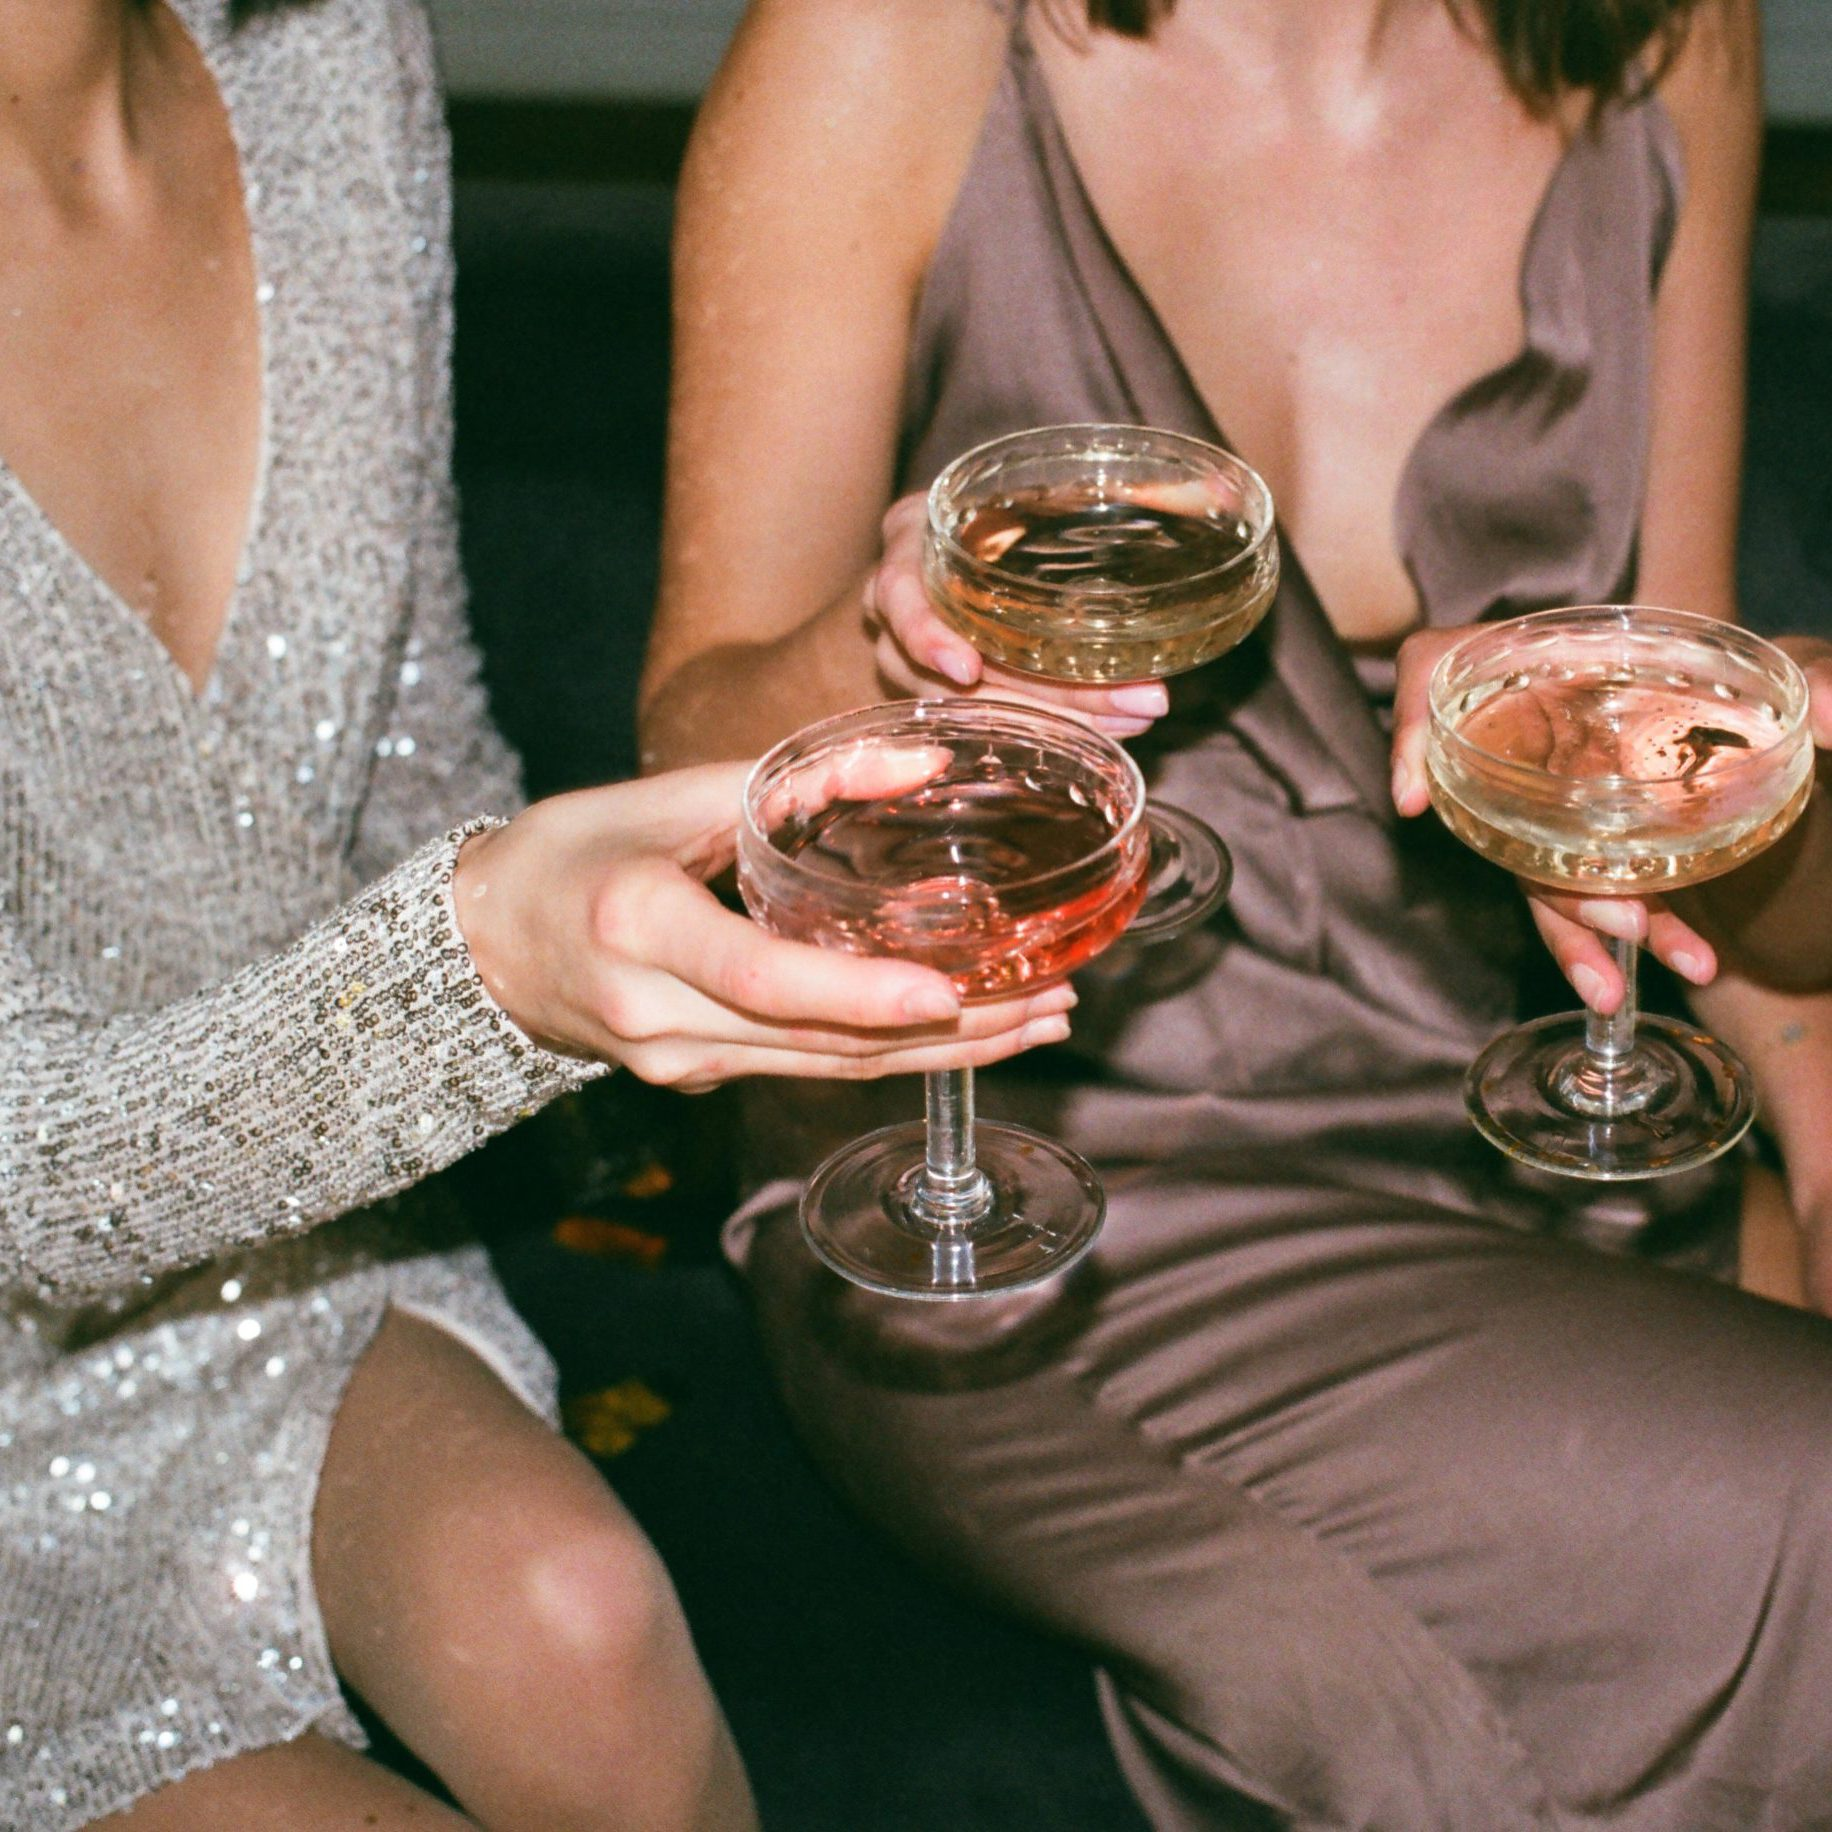 CBD and celebrities friends holding champagne glass